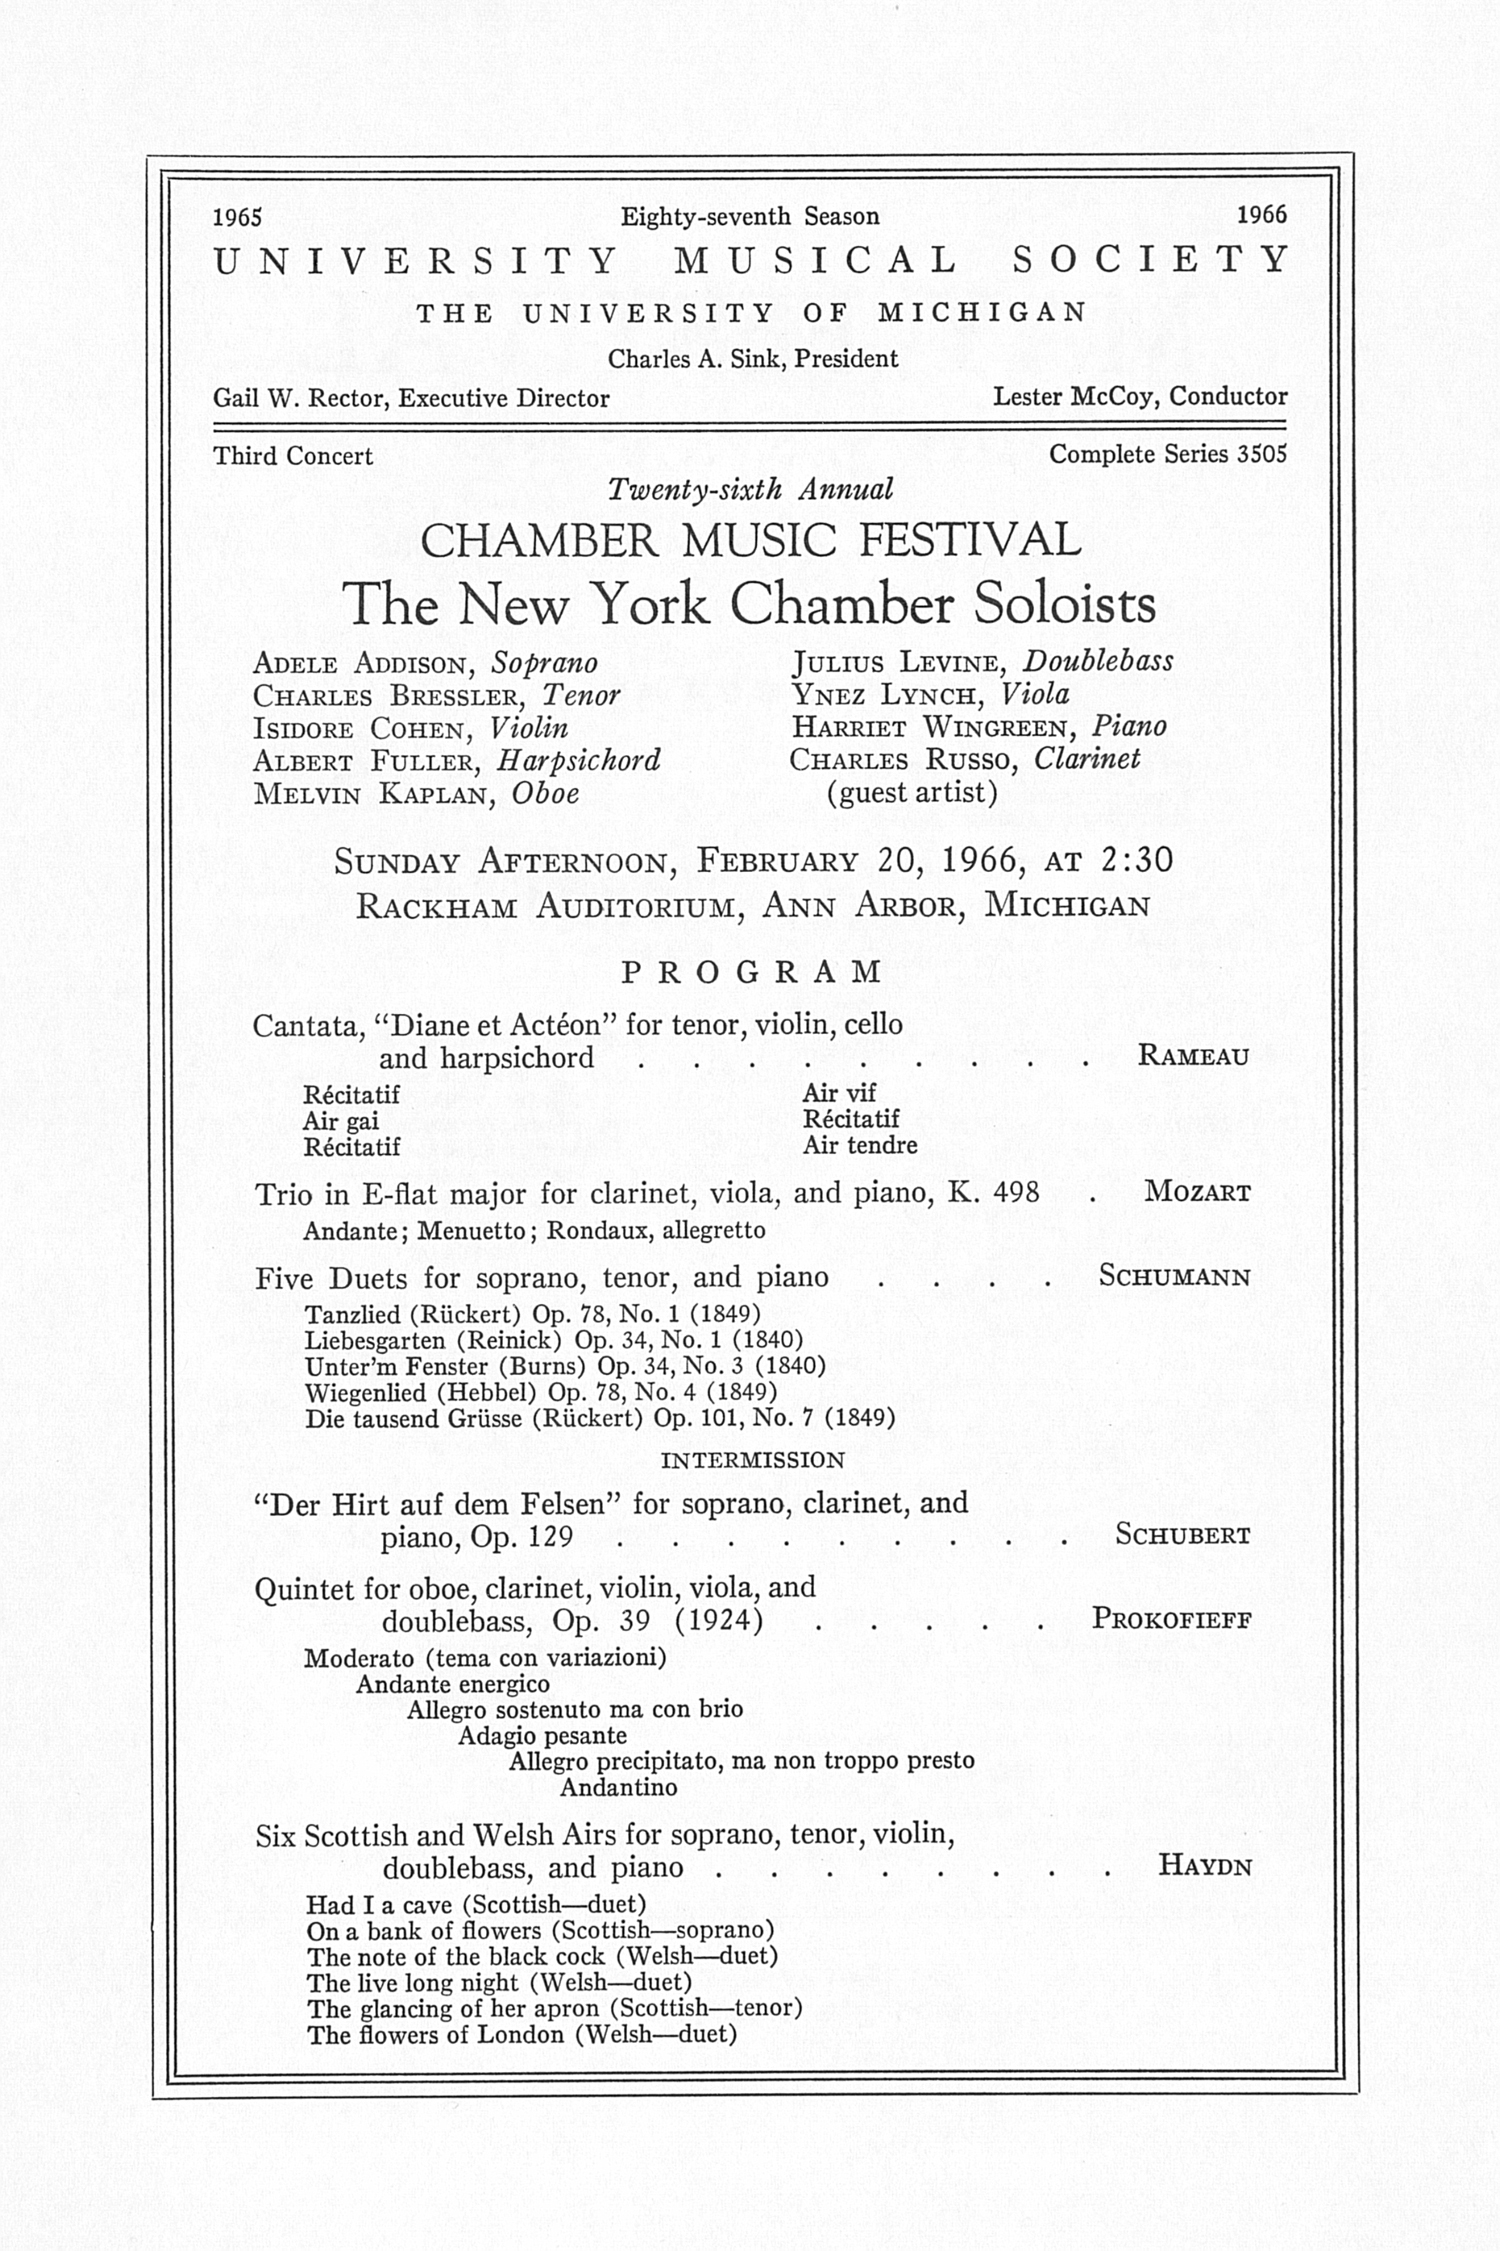 UMS Concert Program, February 20, 1966: Twenty-sixth Annual Chamber Music Festival --  image